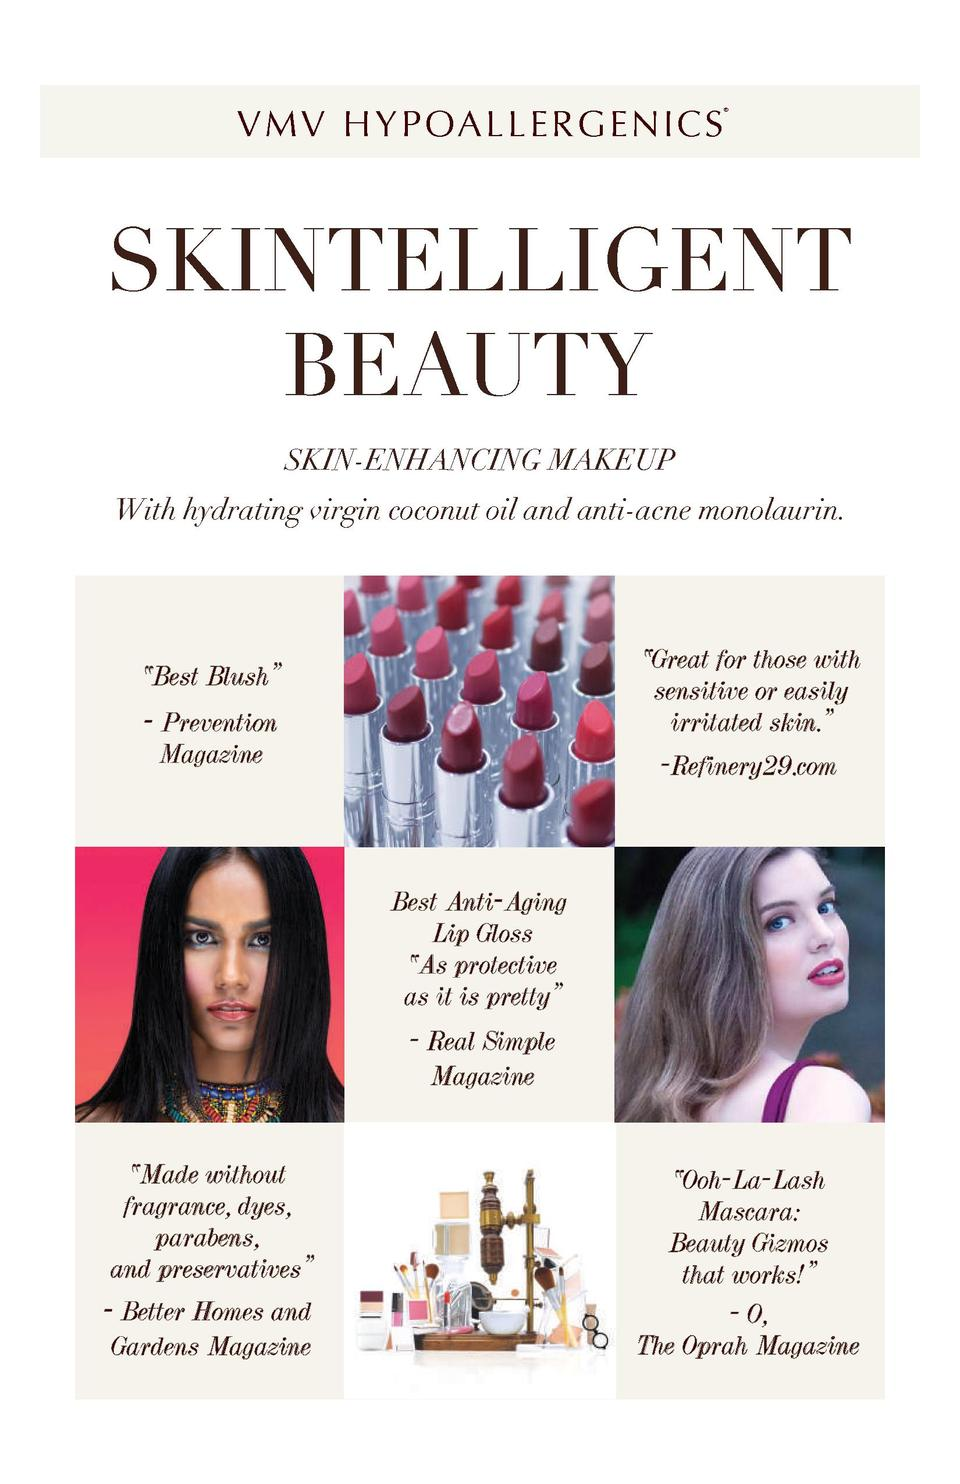 V M V H Y P OA L L E R G E N I C S      SKINTELLIGENT BEAUTY SKIN-ENHANCING MAKEUP With hydrating virgin coconut oil and a...